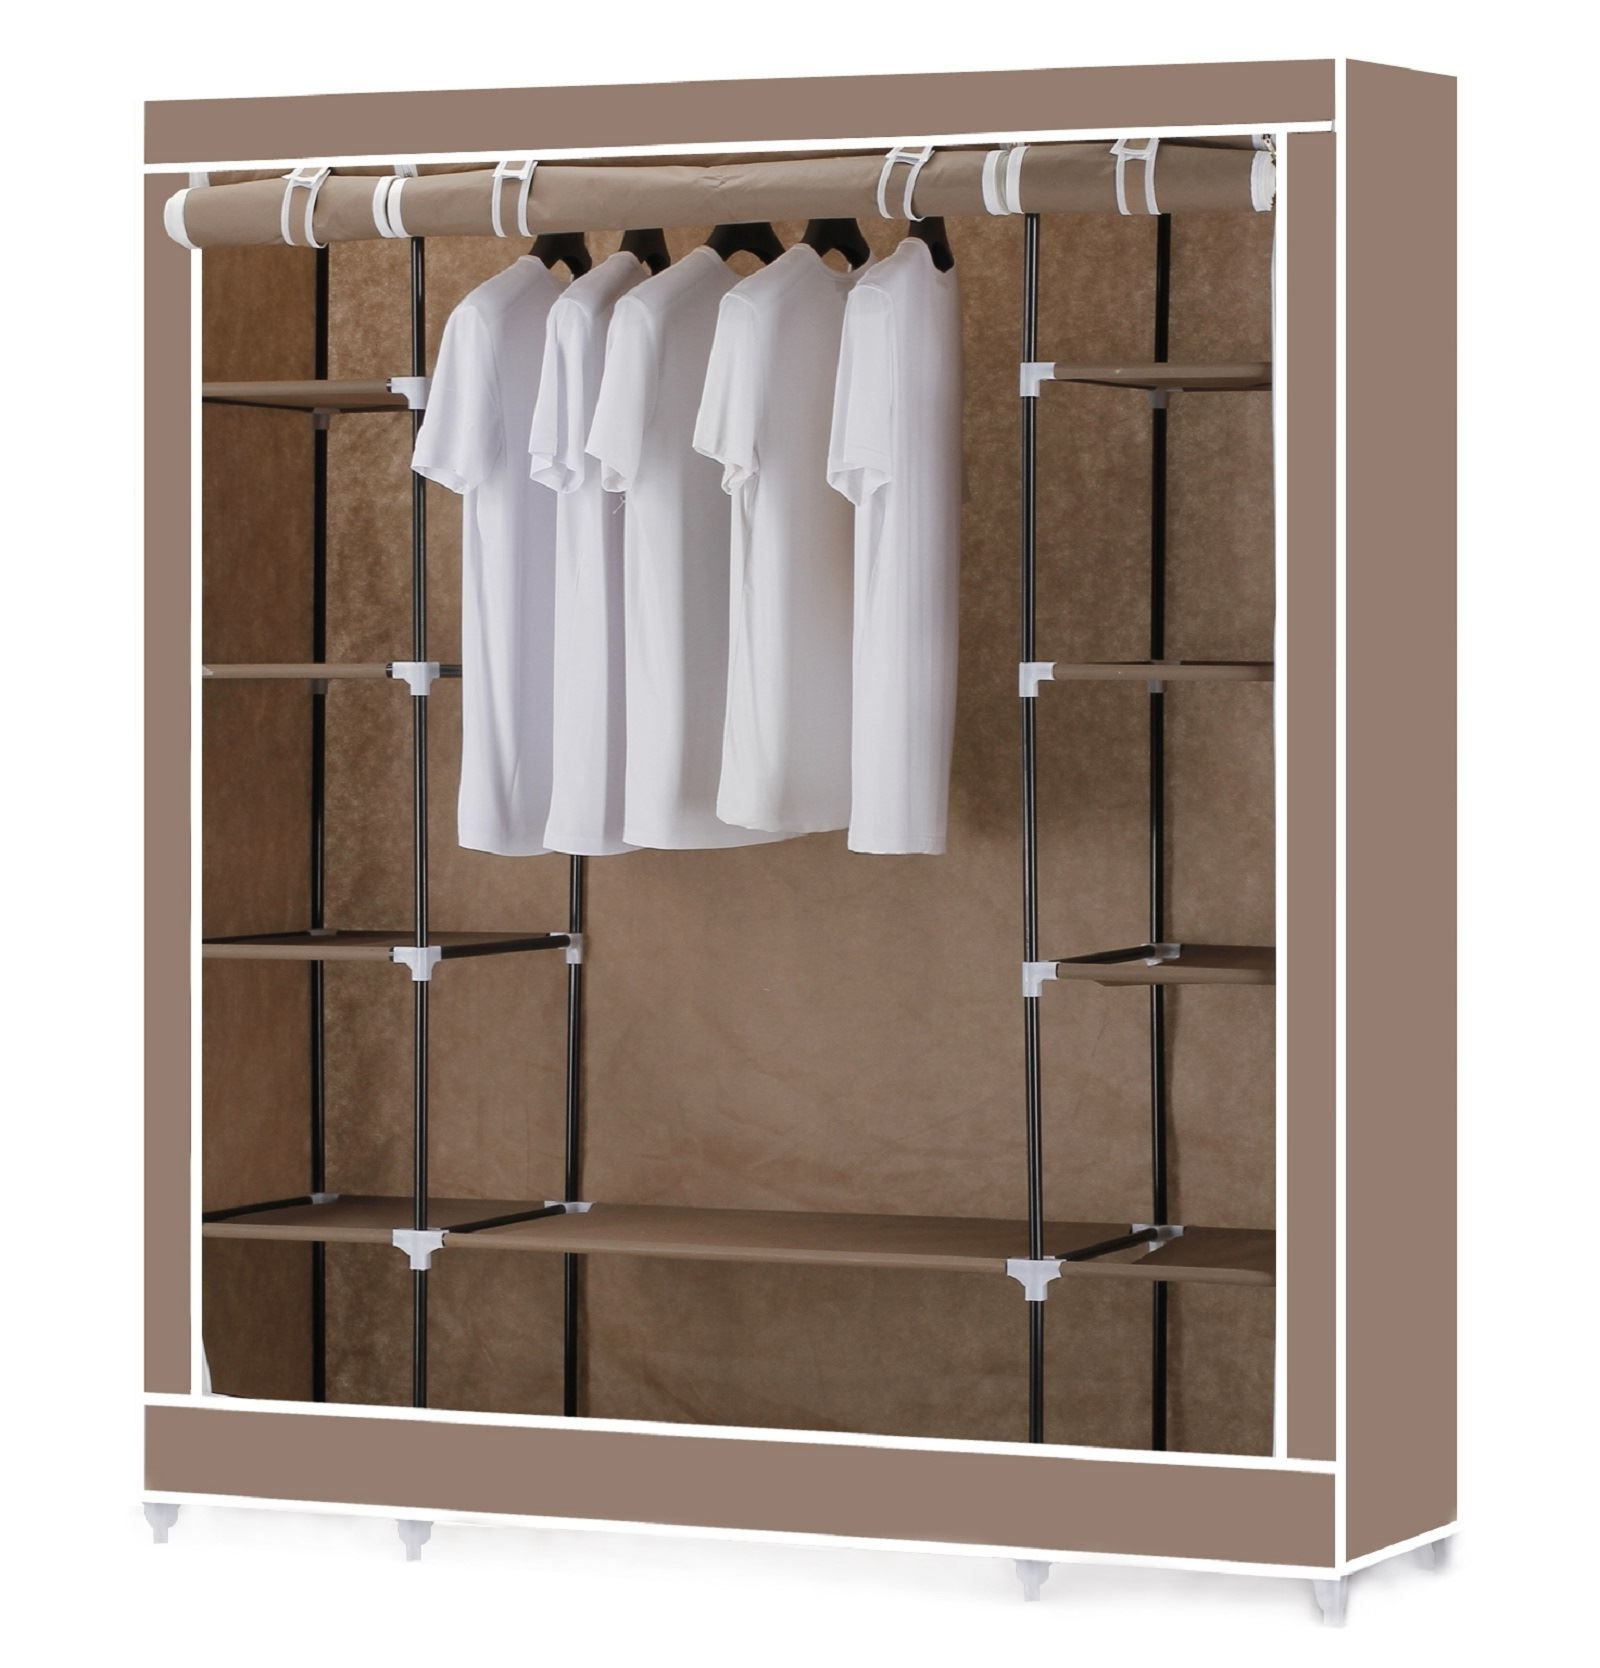 Gallery of double wardrobes hanging rail and supports view 6 of 15 double wardrobes hanging rail and supports throughout widely used vinsani triple canvas clothes wardrobe hanging rail sisterspd